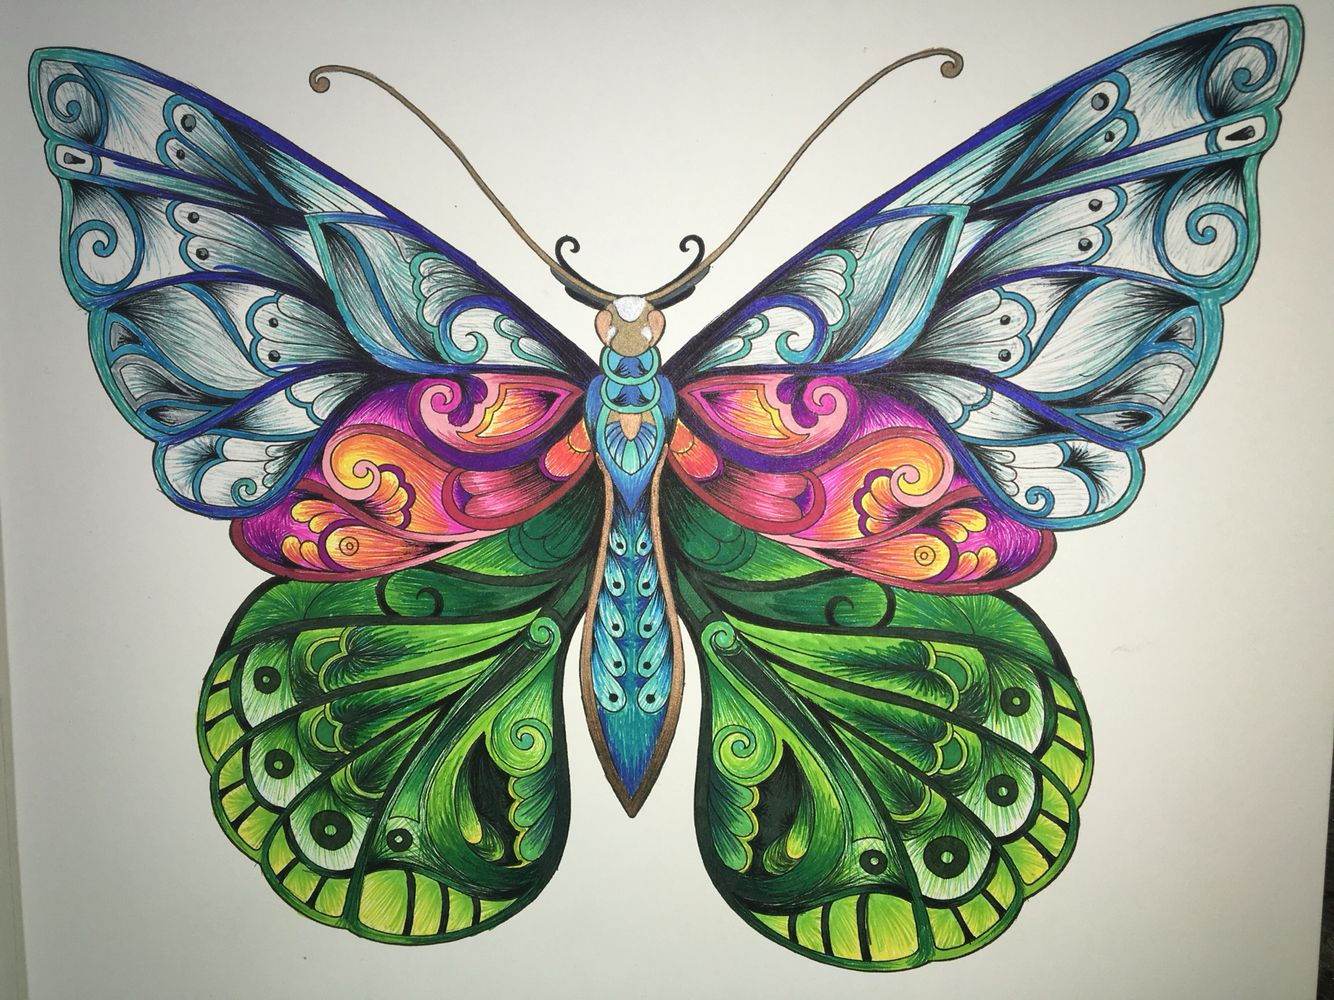 Magical Jungle Butterfly Coloring Book Johanna Basford Johanna Basford Coloring Book Johanna Coloring Book Johanna Basford Coloring